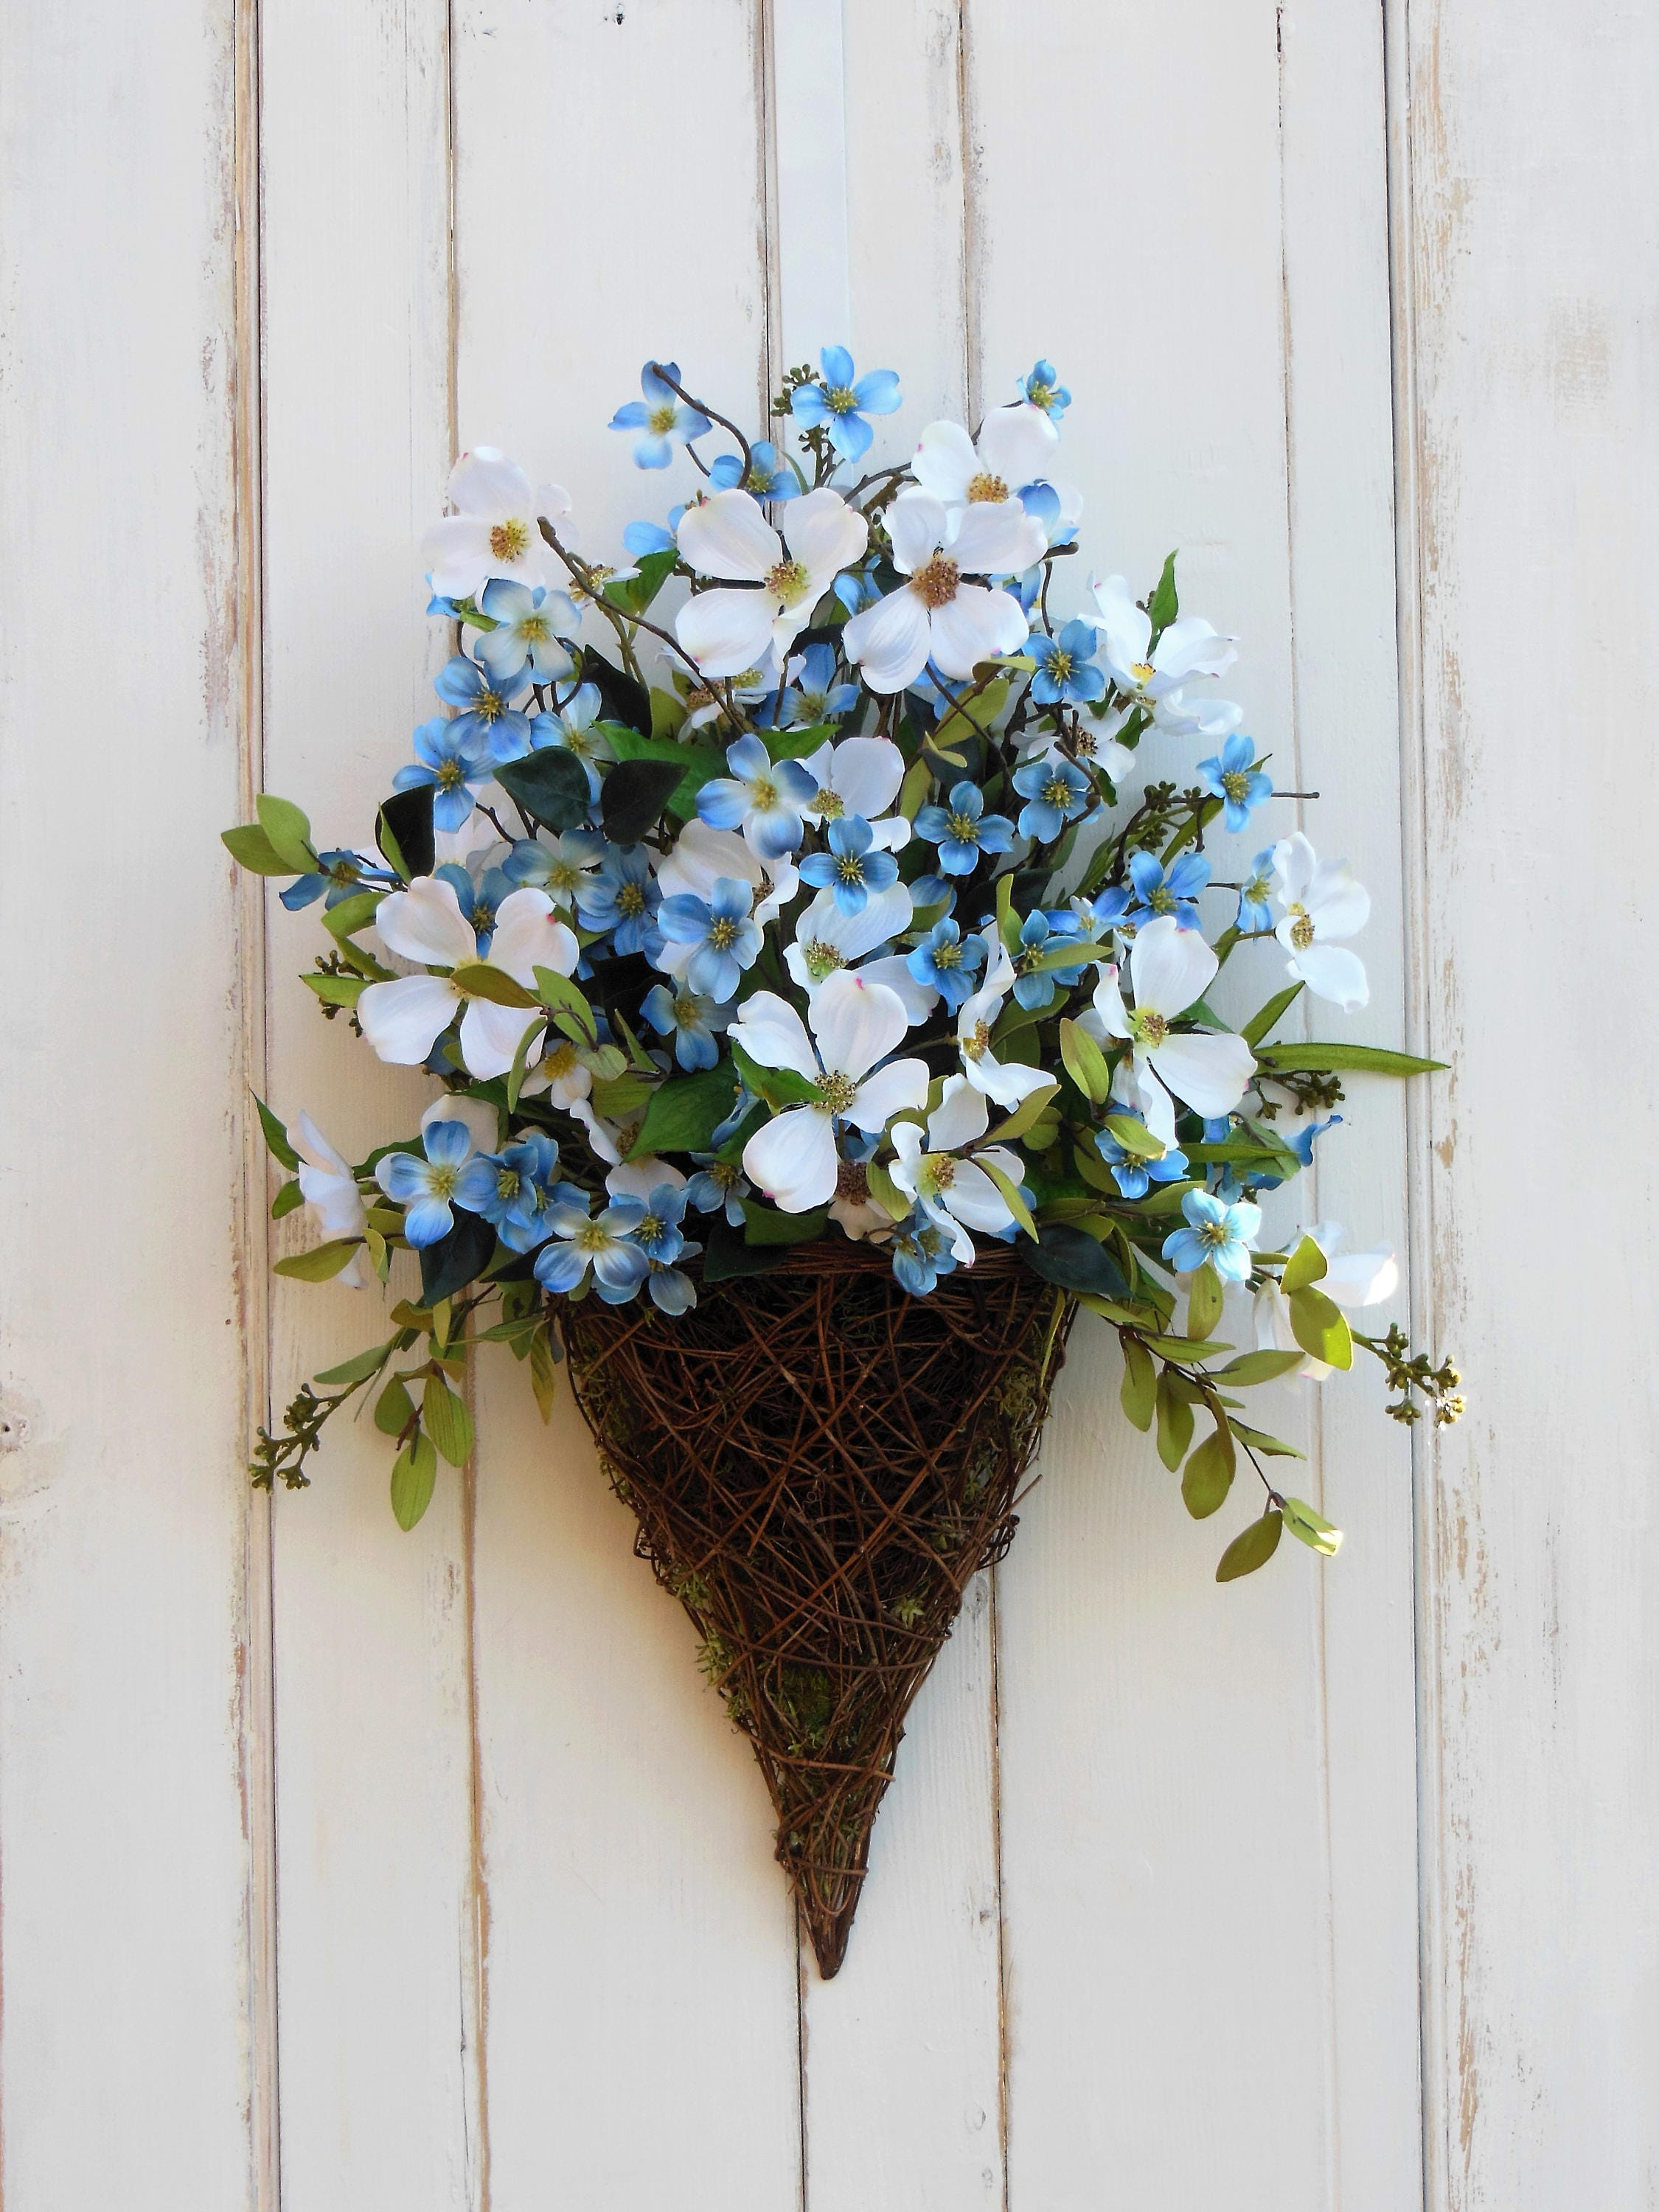 Front Door Wreath Door Basket Blue Flower Wreath Summer Wreath All Season Wreath Wreath for Summer Summer Door Basket Everyday Wreath & Front Door Wreath Door Basket Blue Flower Wreath Summer Wreath ...